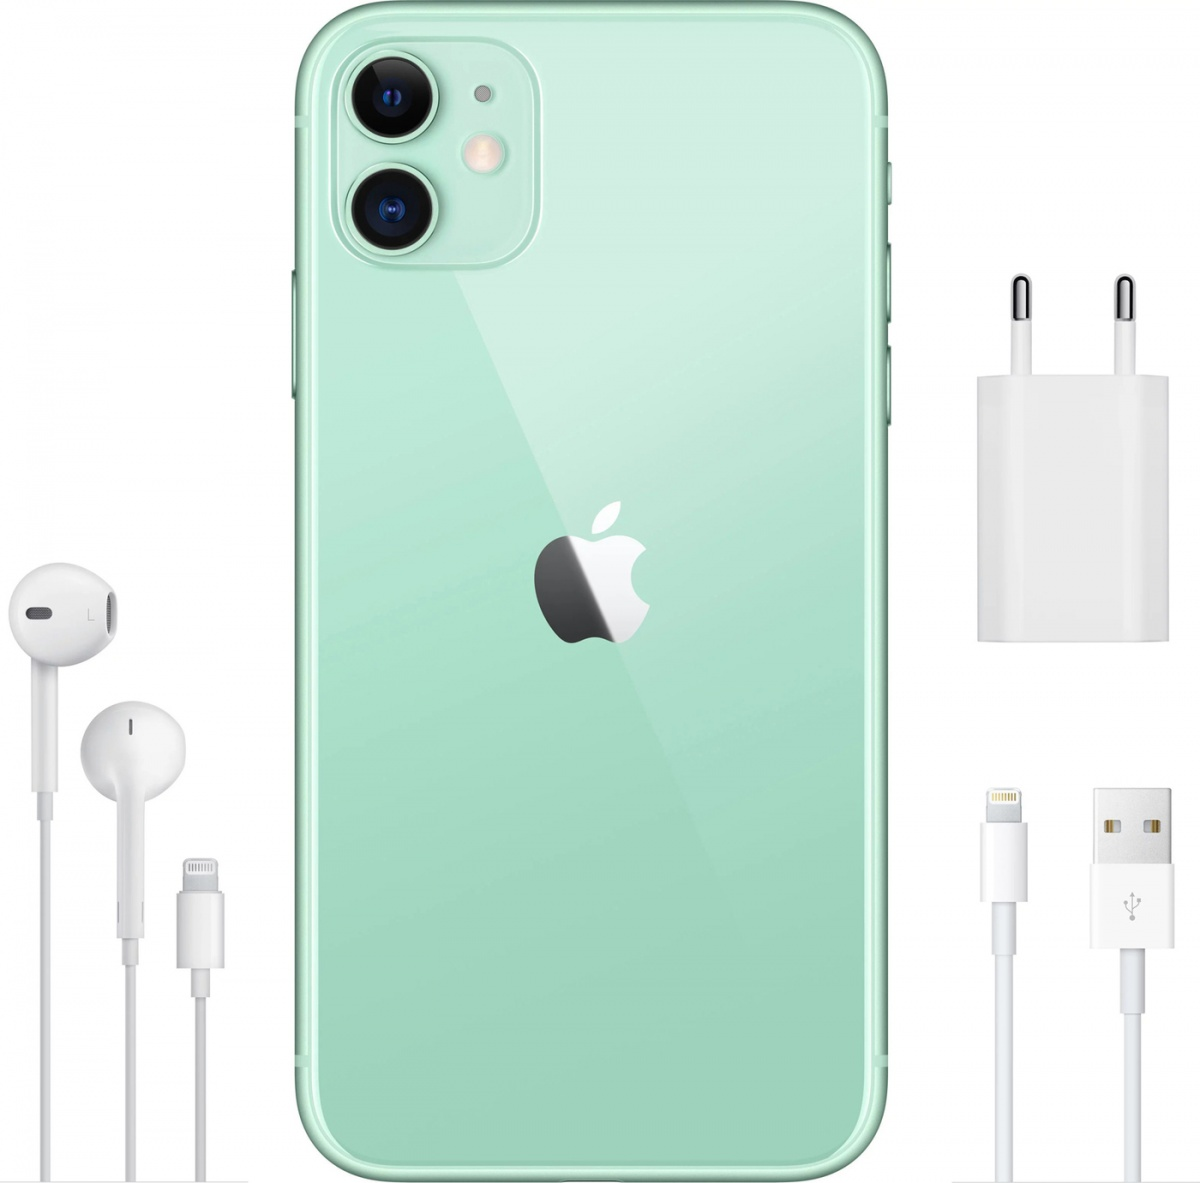 Смартфон Apple iPhone 11 Зеленый / 256 ГБ